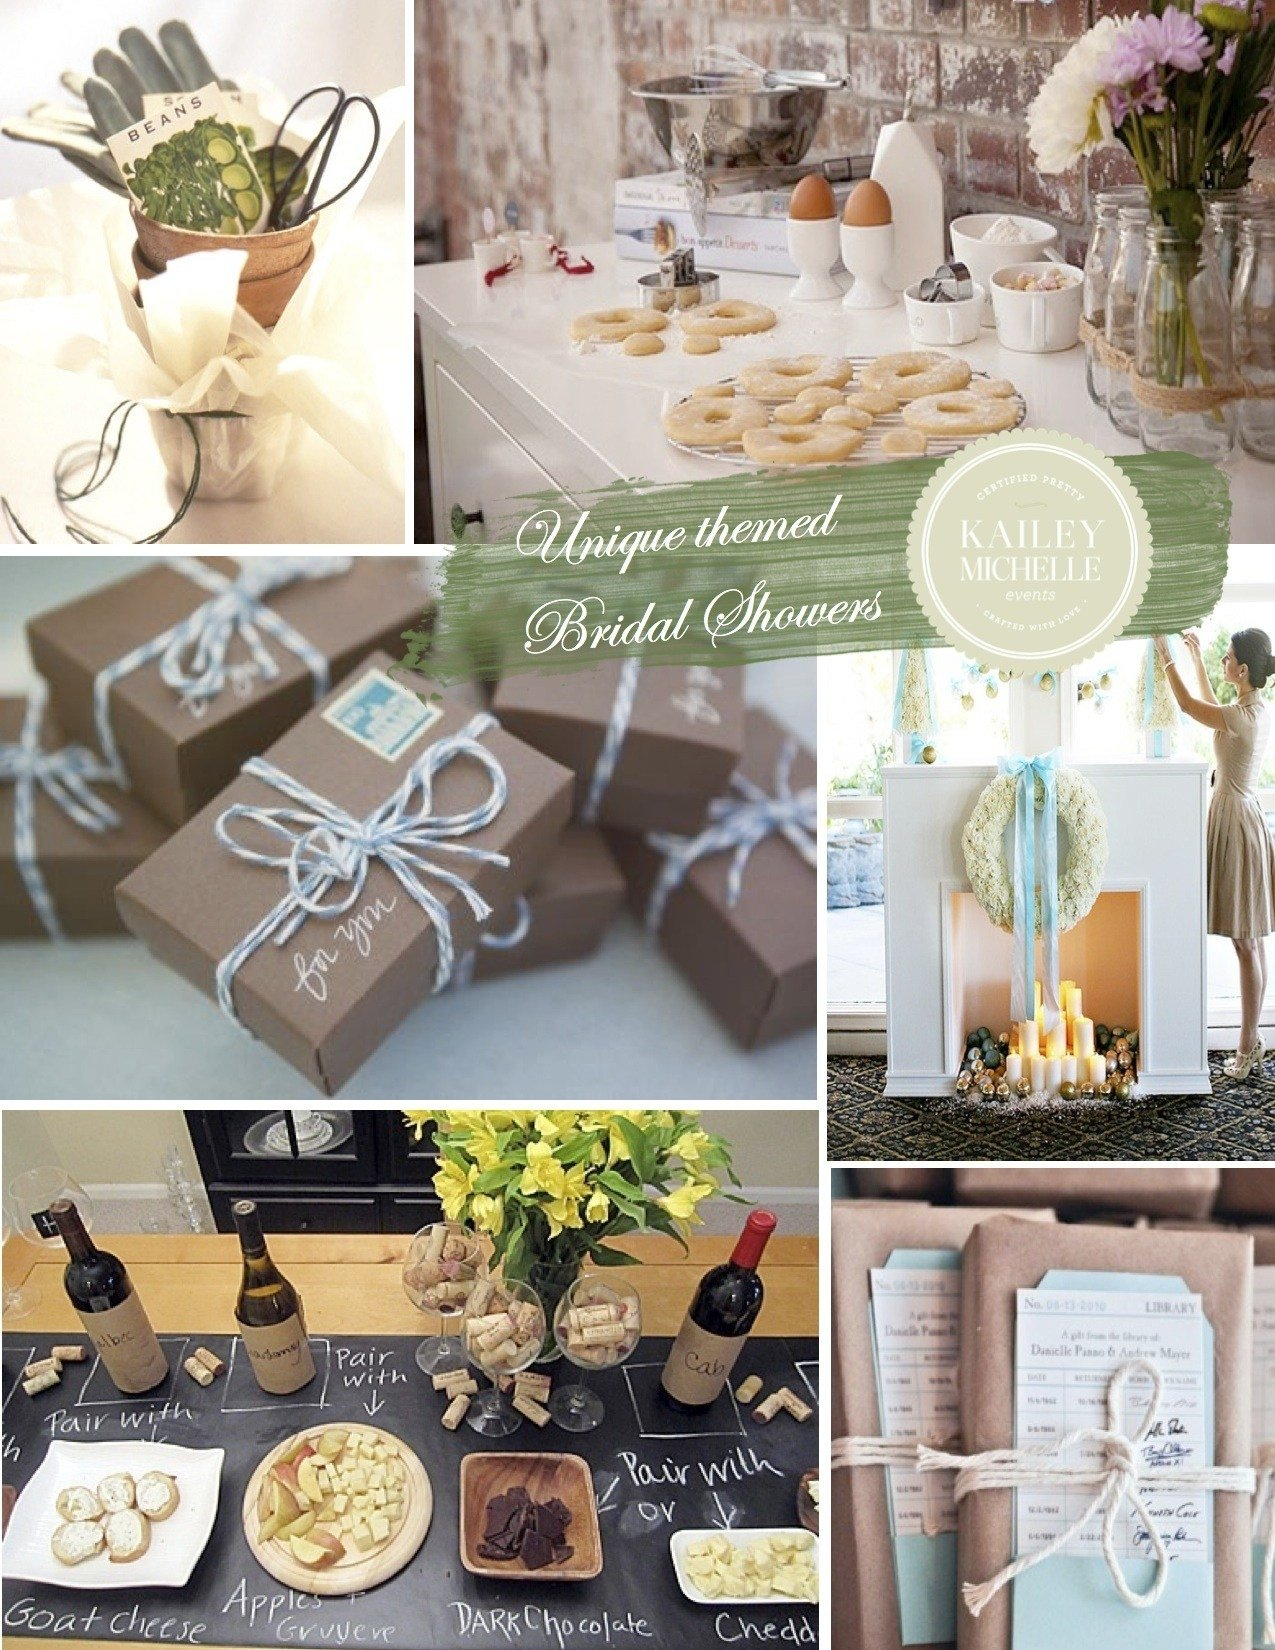 10 Nice Bridal Shower Ideas And Themes bridal shower ideas 6 unique themes 3 2020